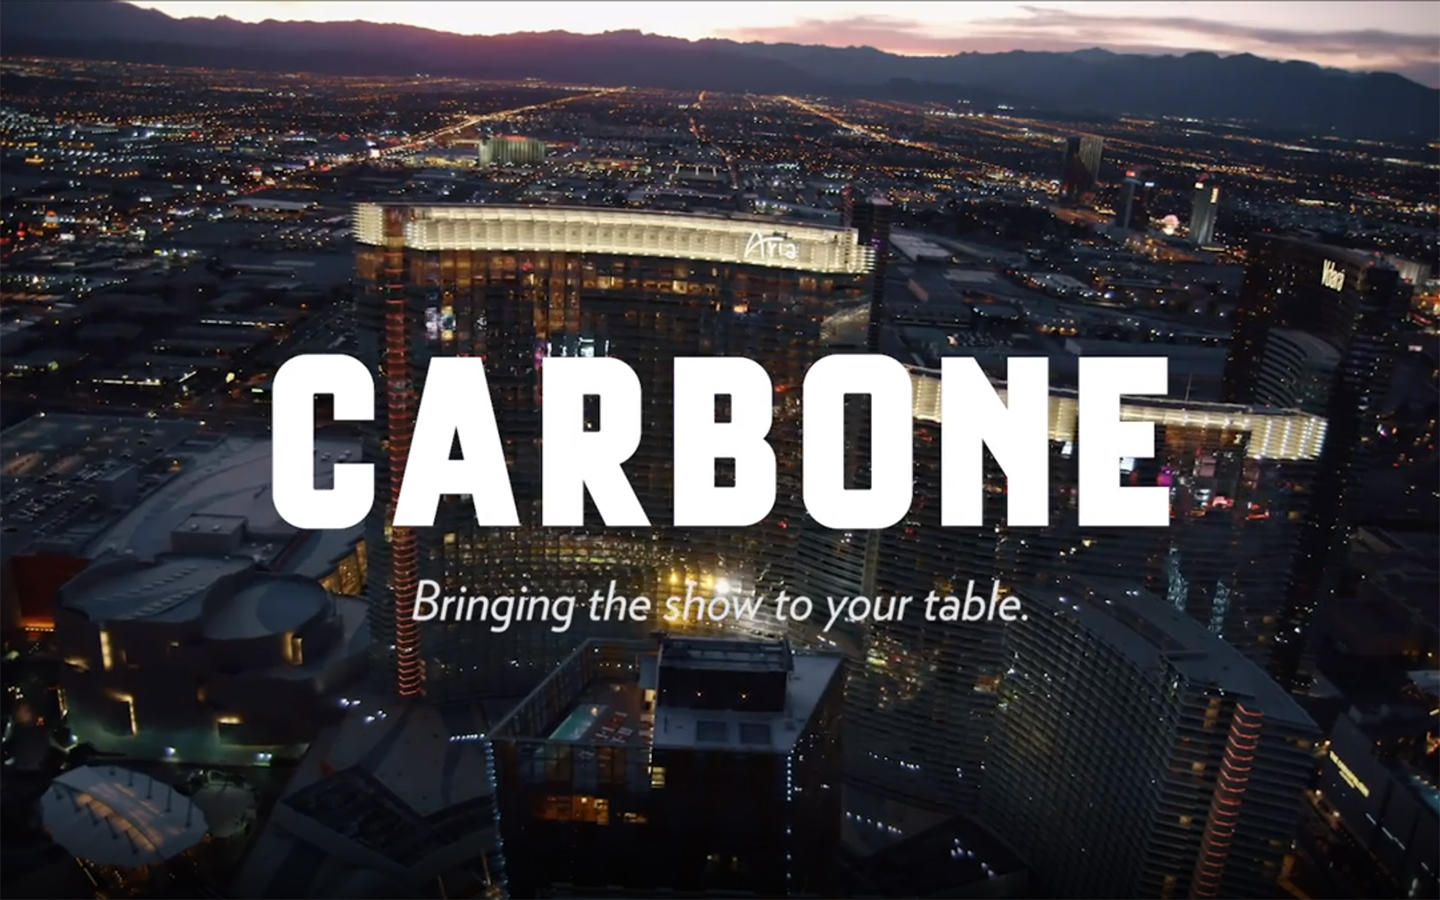 Take in the sights and enjoy Carbone's Dover Piccata, presented tableside by one of our captains.